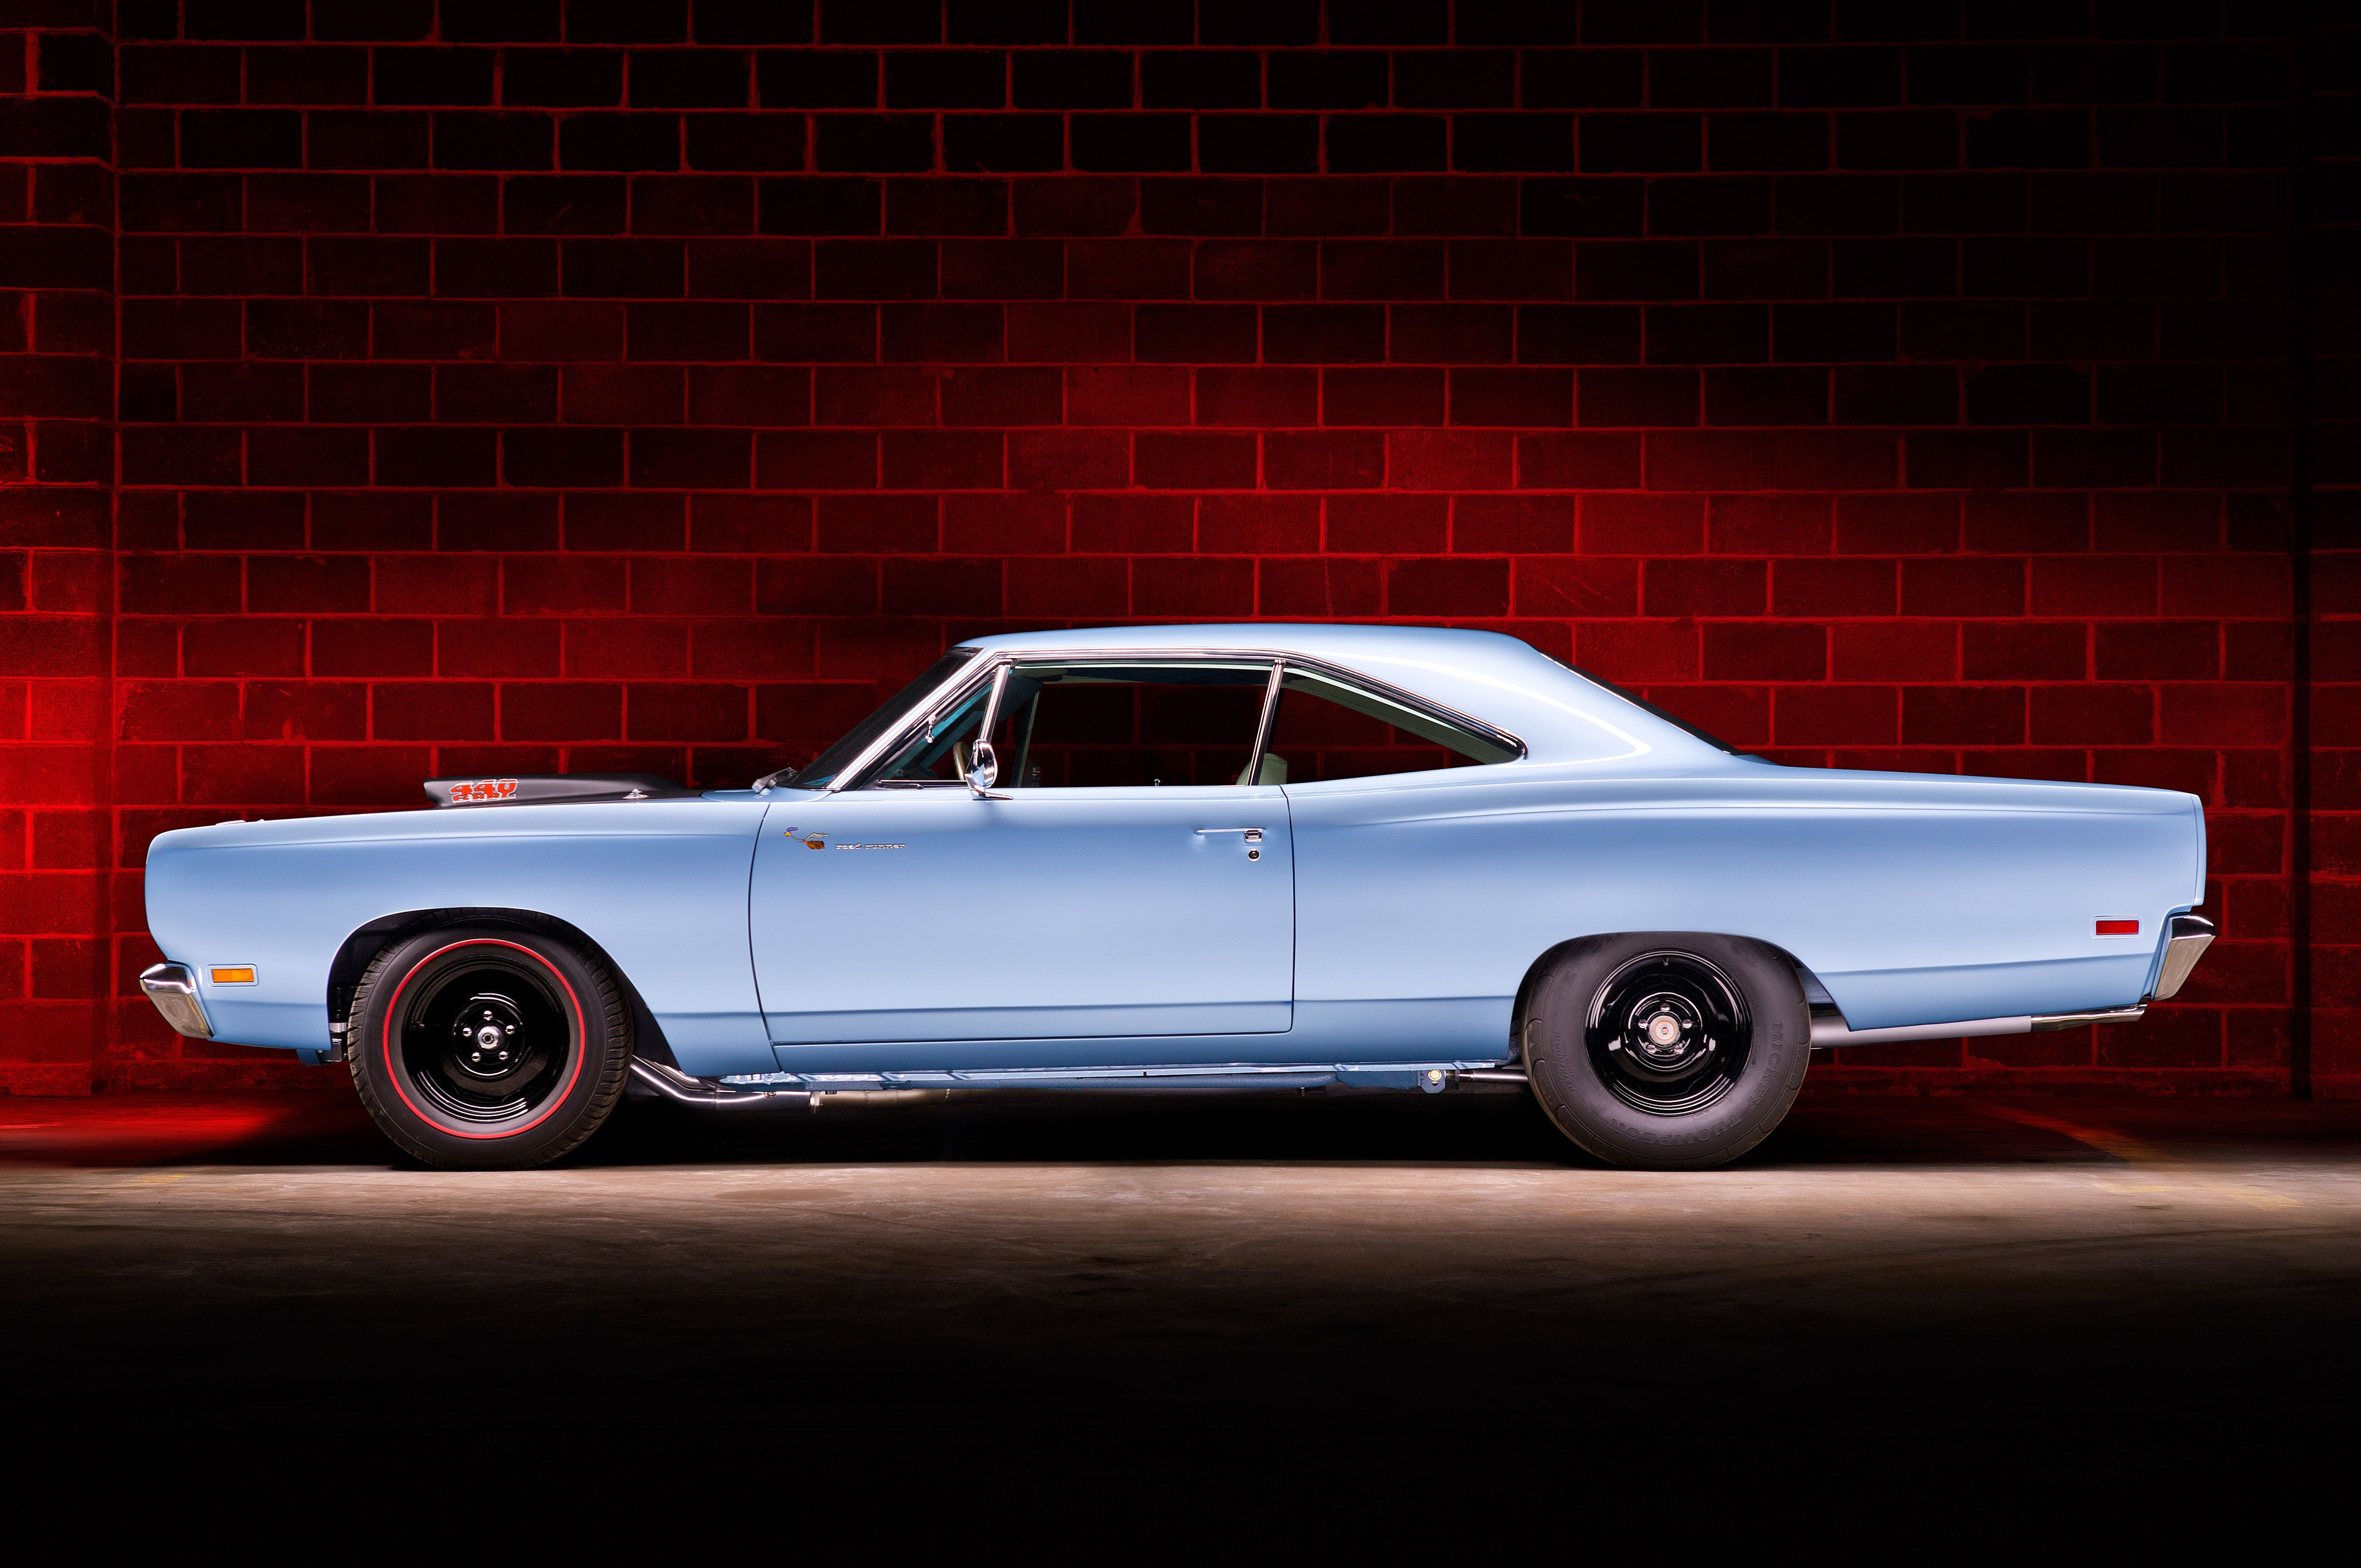 1969 Plymouth Road Runner cars coupe wallpaper | 6144x4080 ...